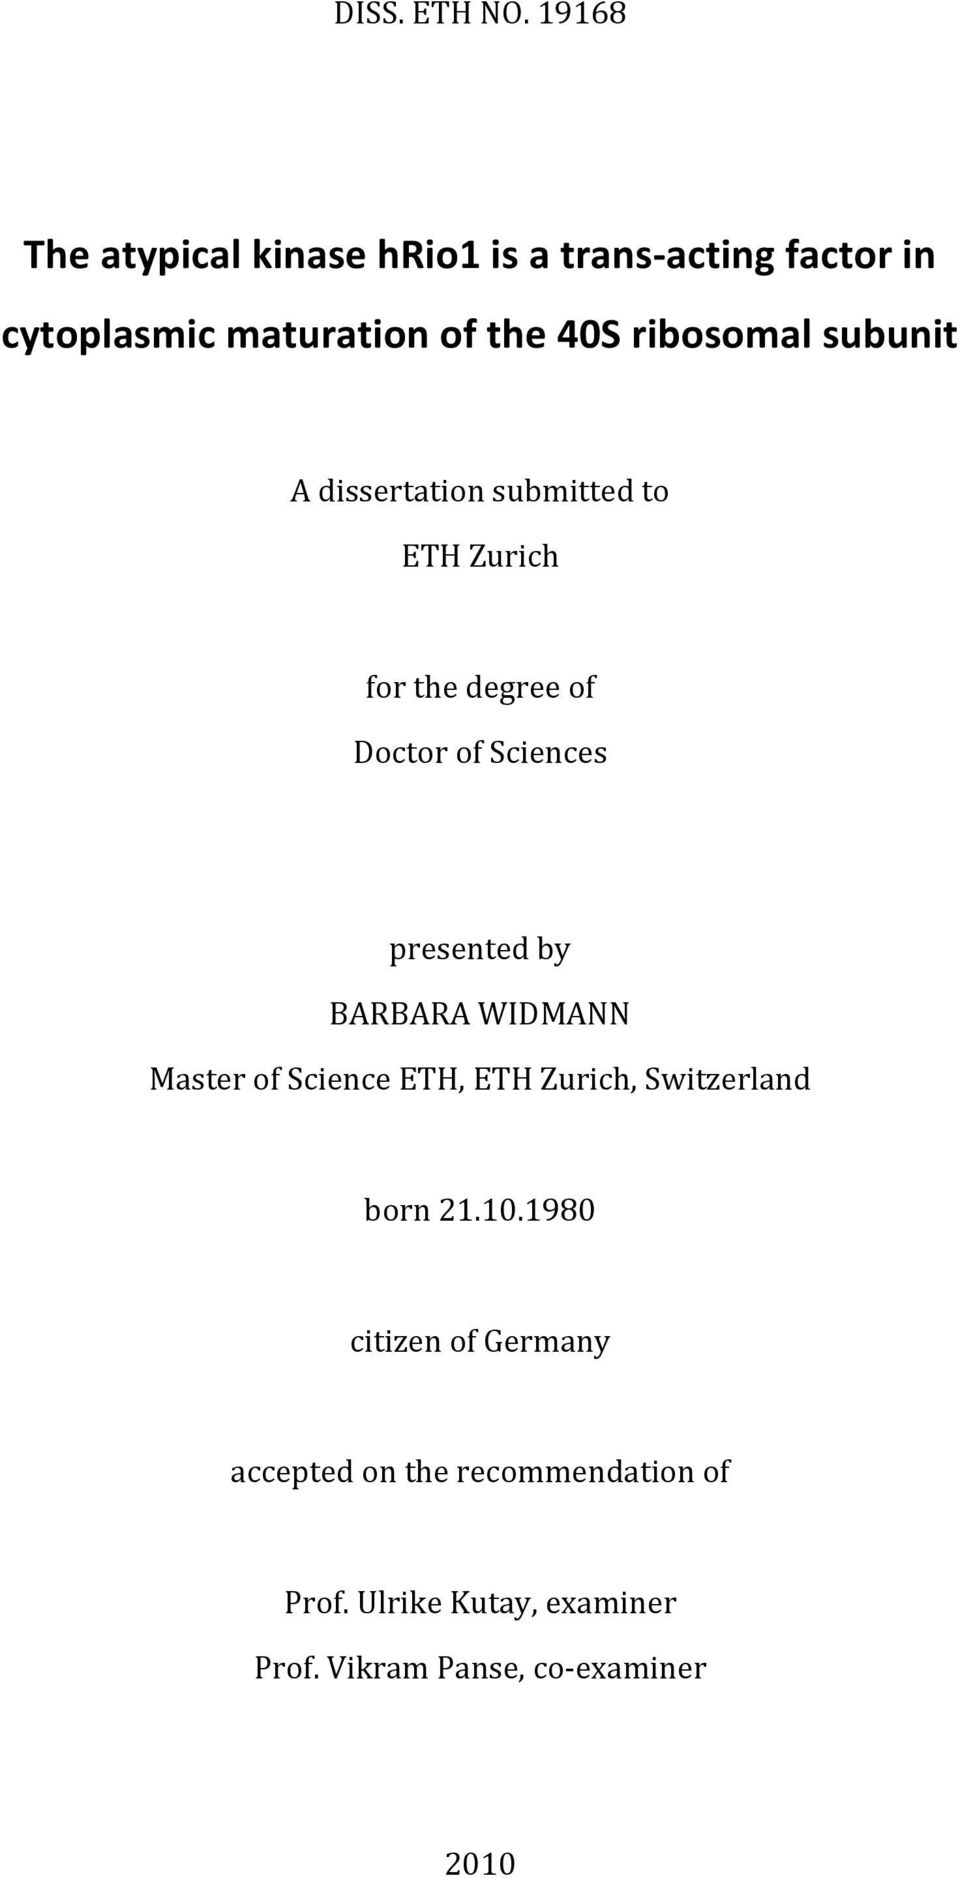 ribosomal subunit A dissertation submitted to ETH Zurich for the degree of Doctor of Sciences presented